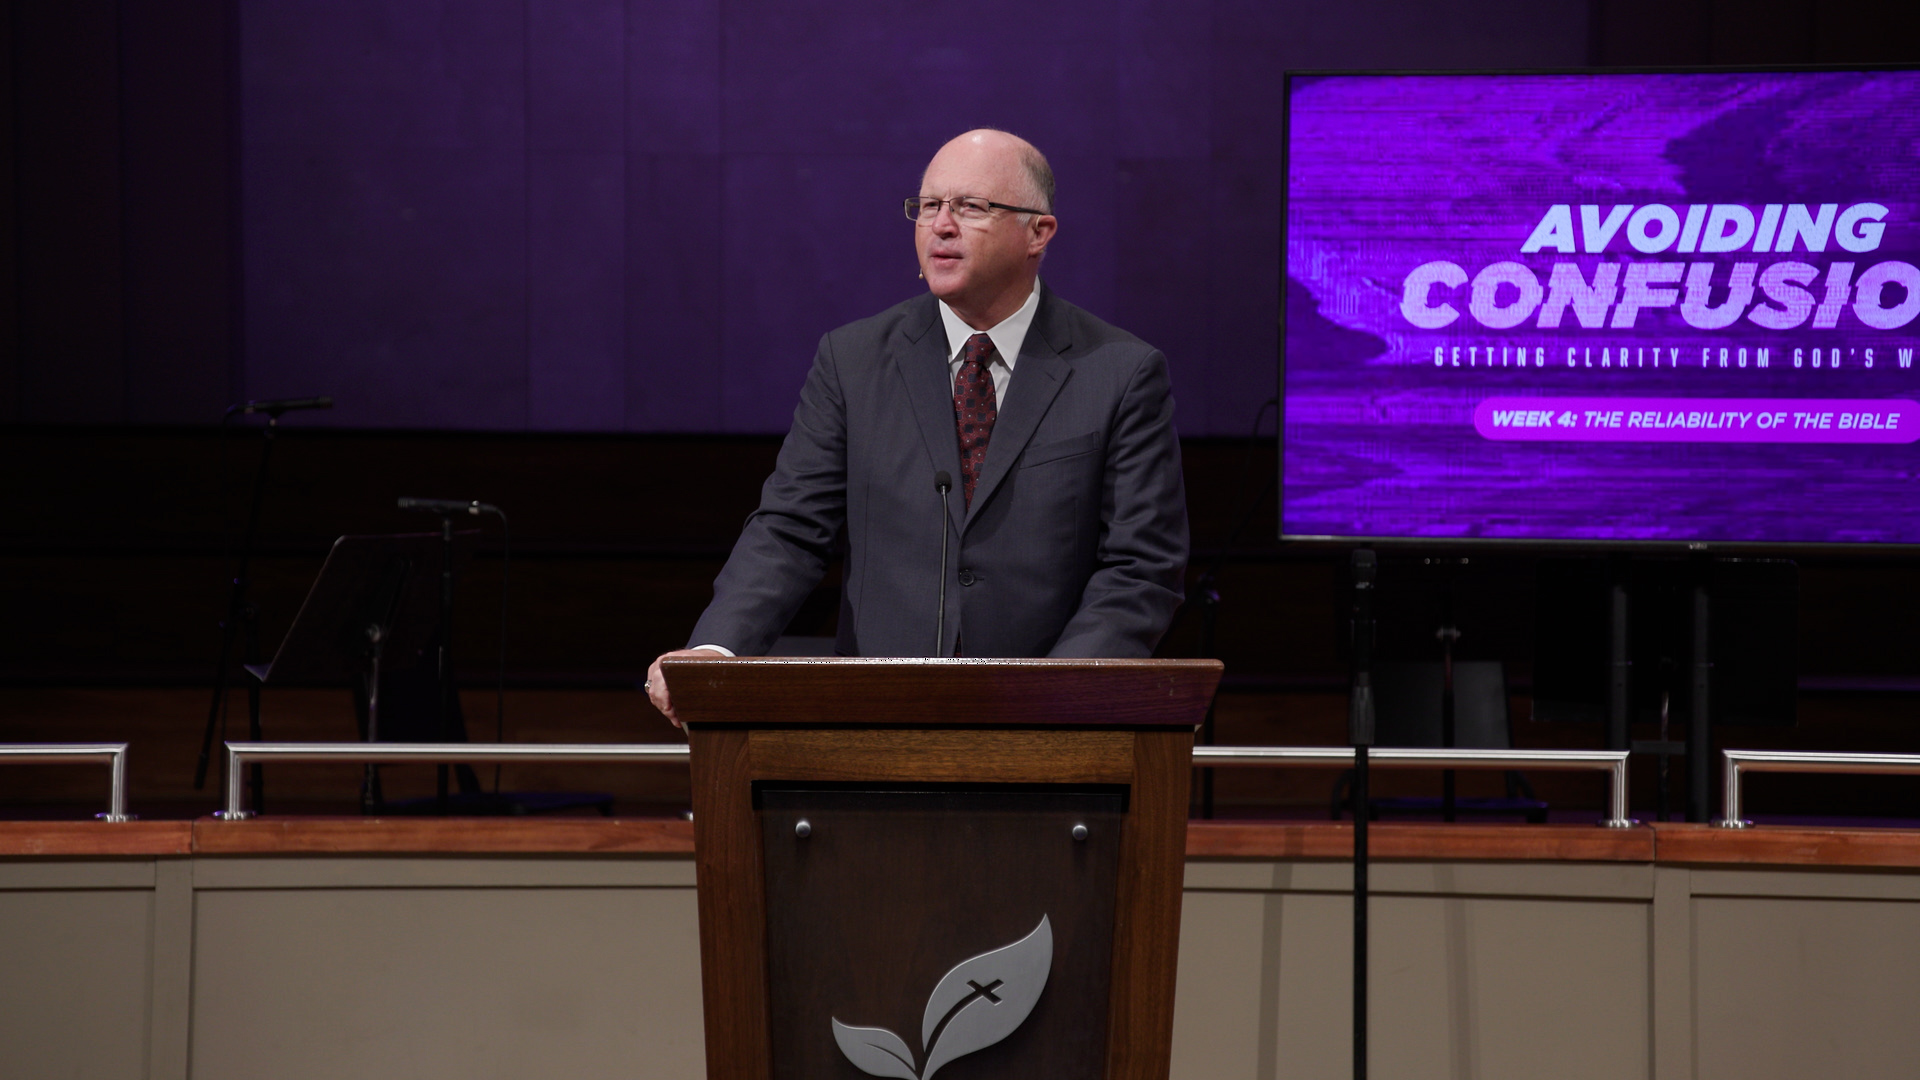 Pastor Paul Chappell: The Reliability of the Bible